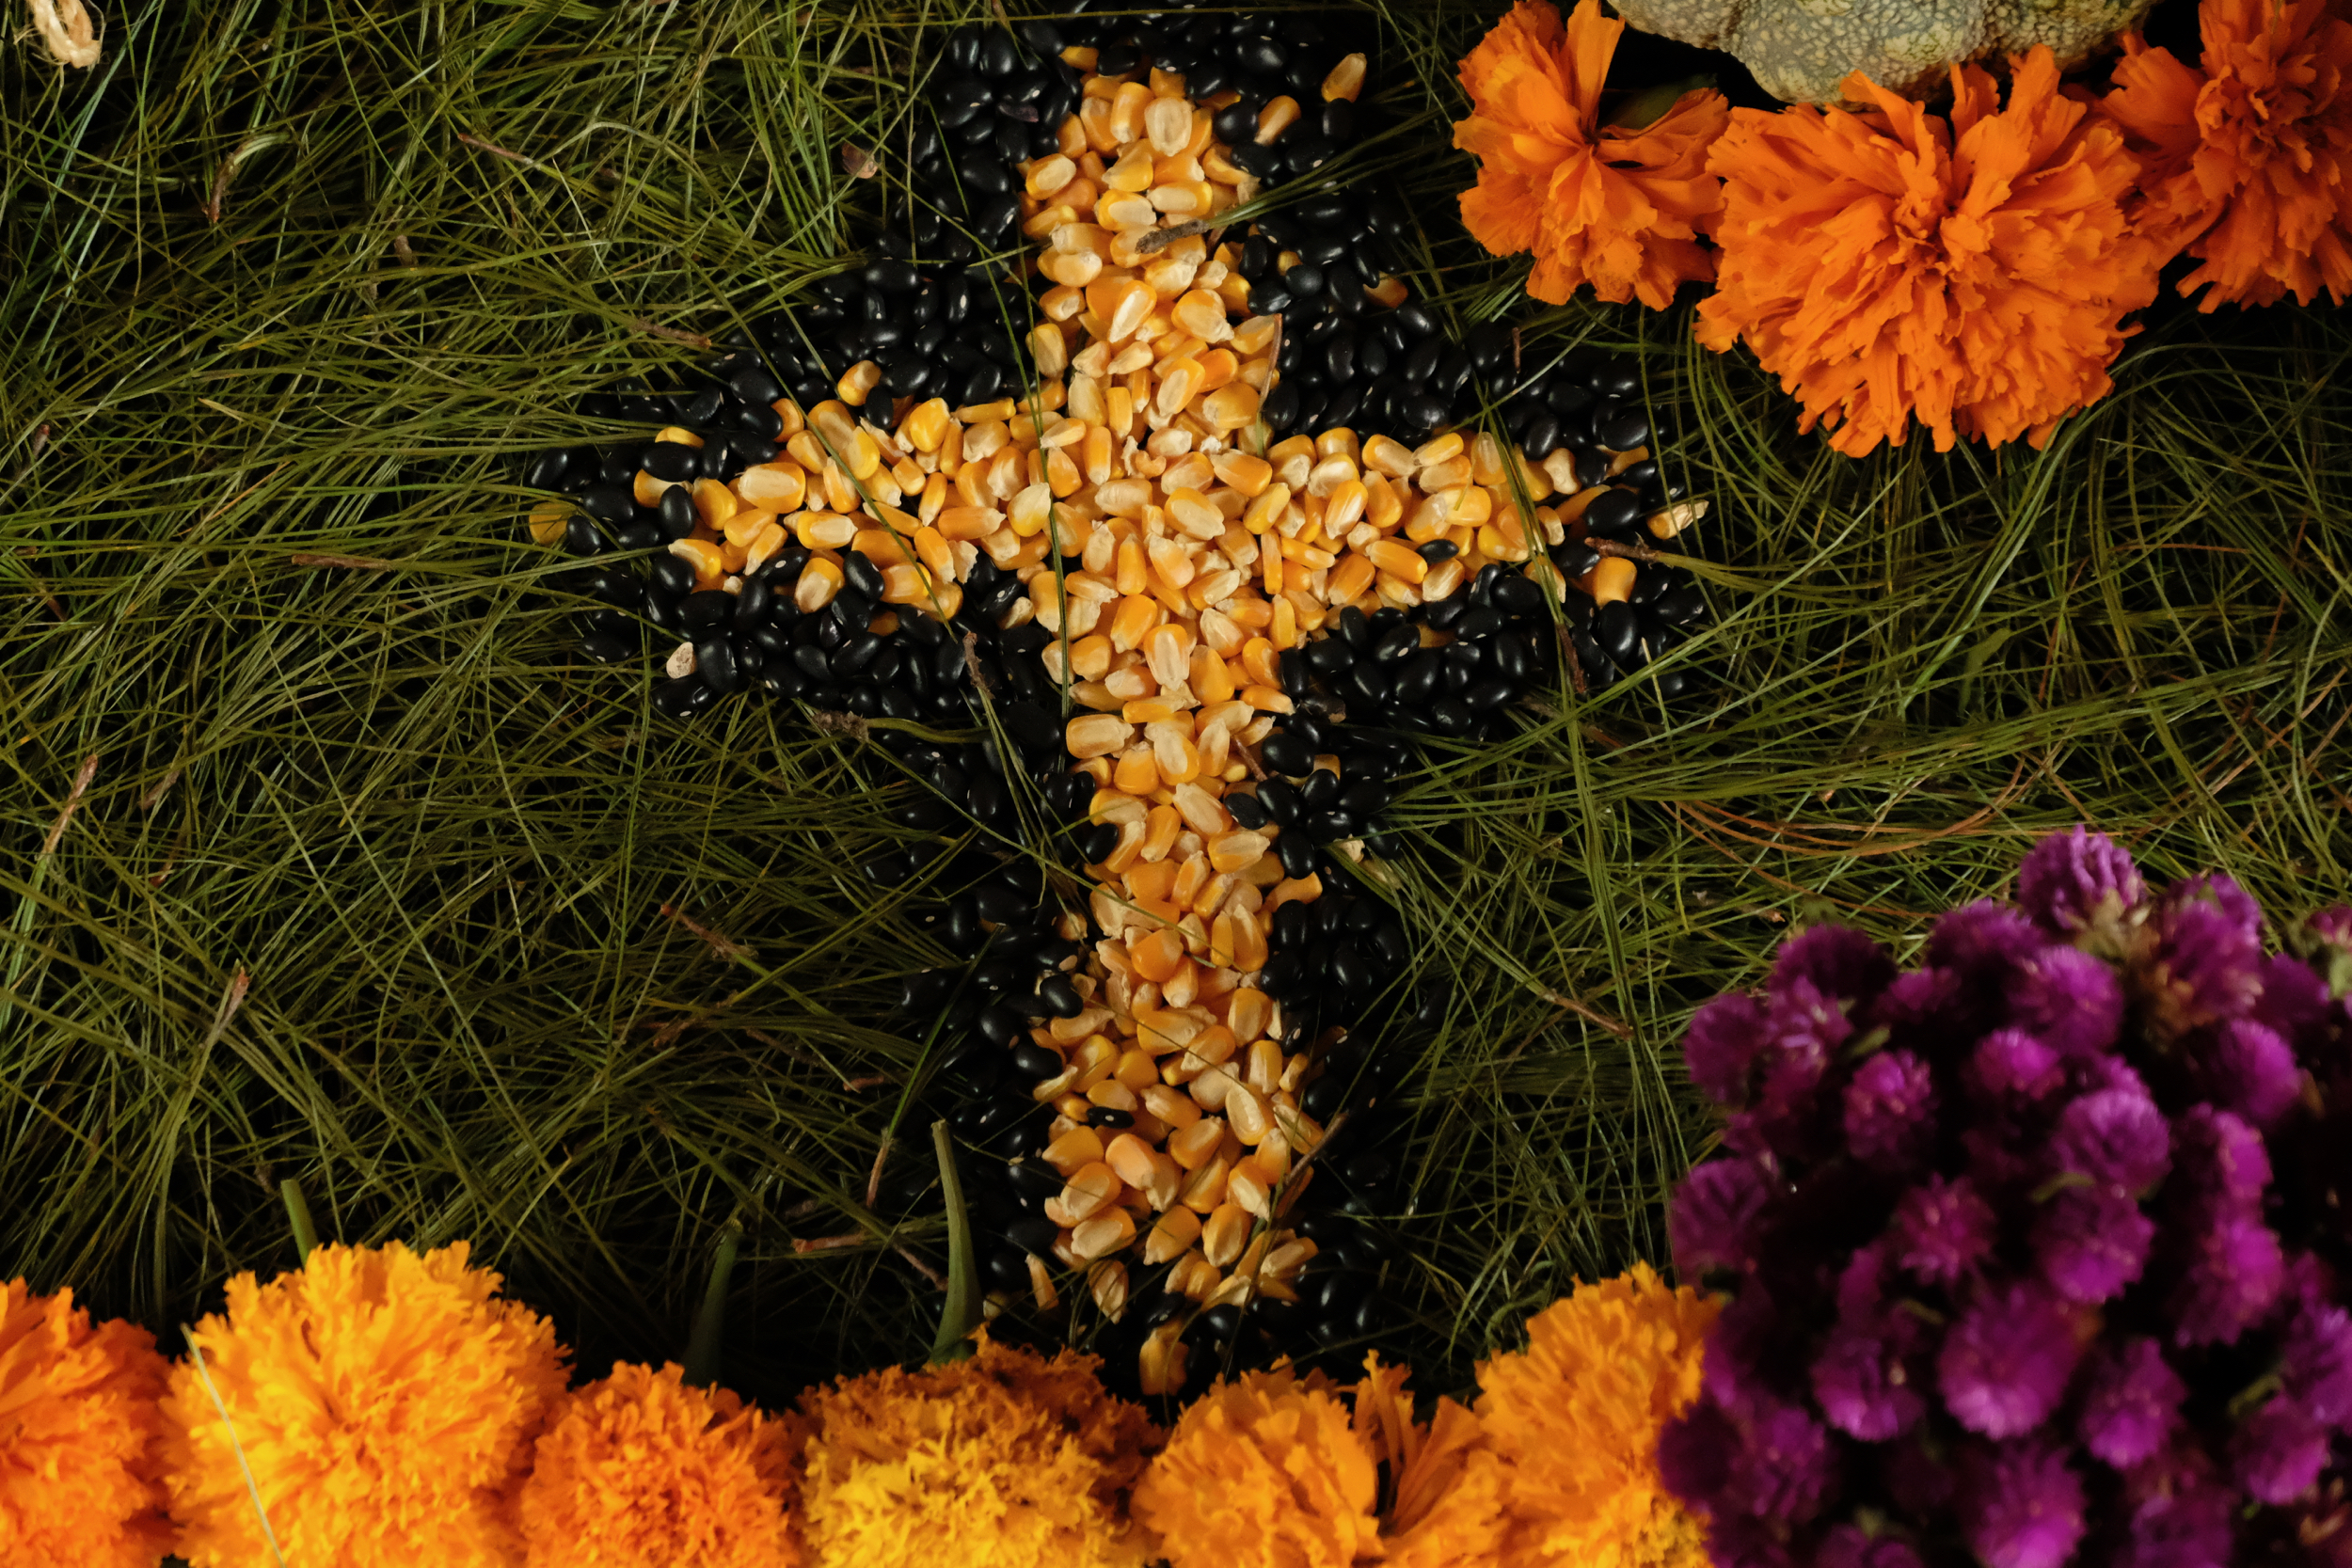 Day of the Dead altar with local pine needles, marigolds, corn and beans